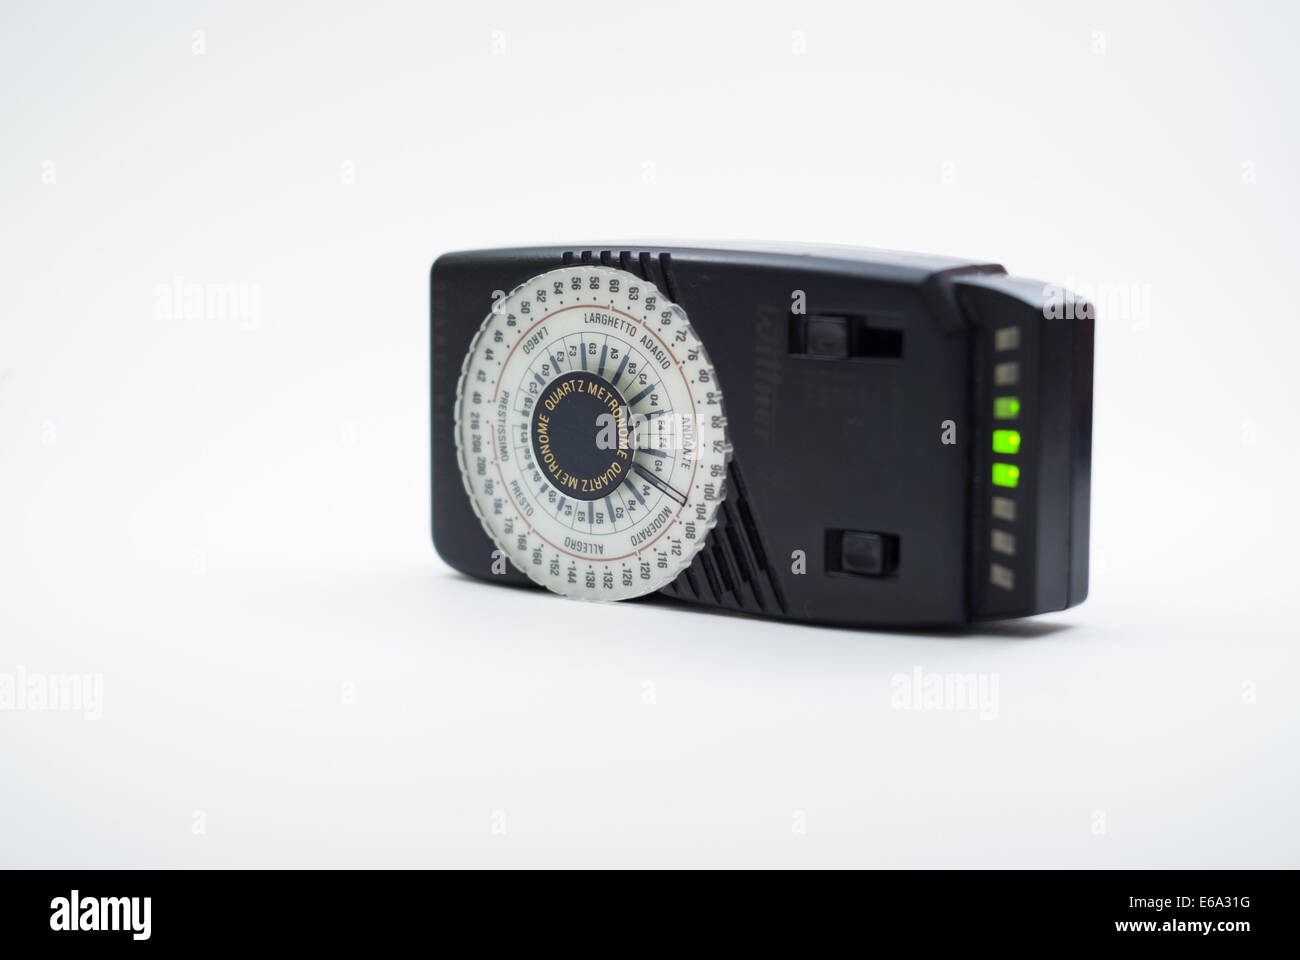 Electronic metronome, Wittner model, isolated on white background (studio shot) - Stock Image